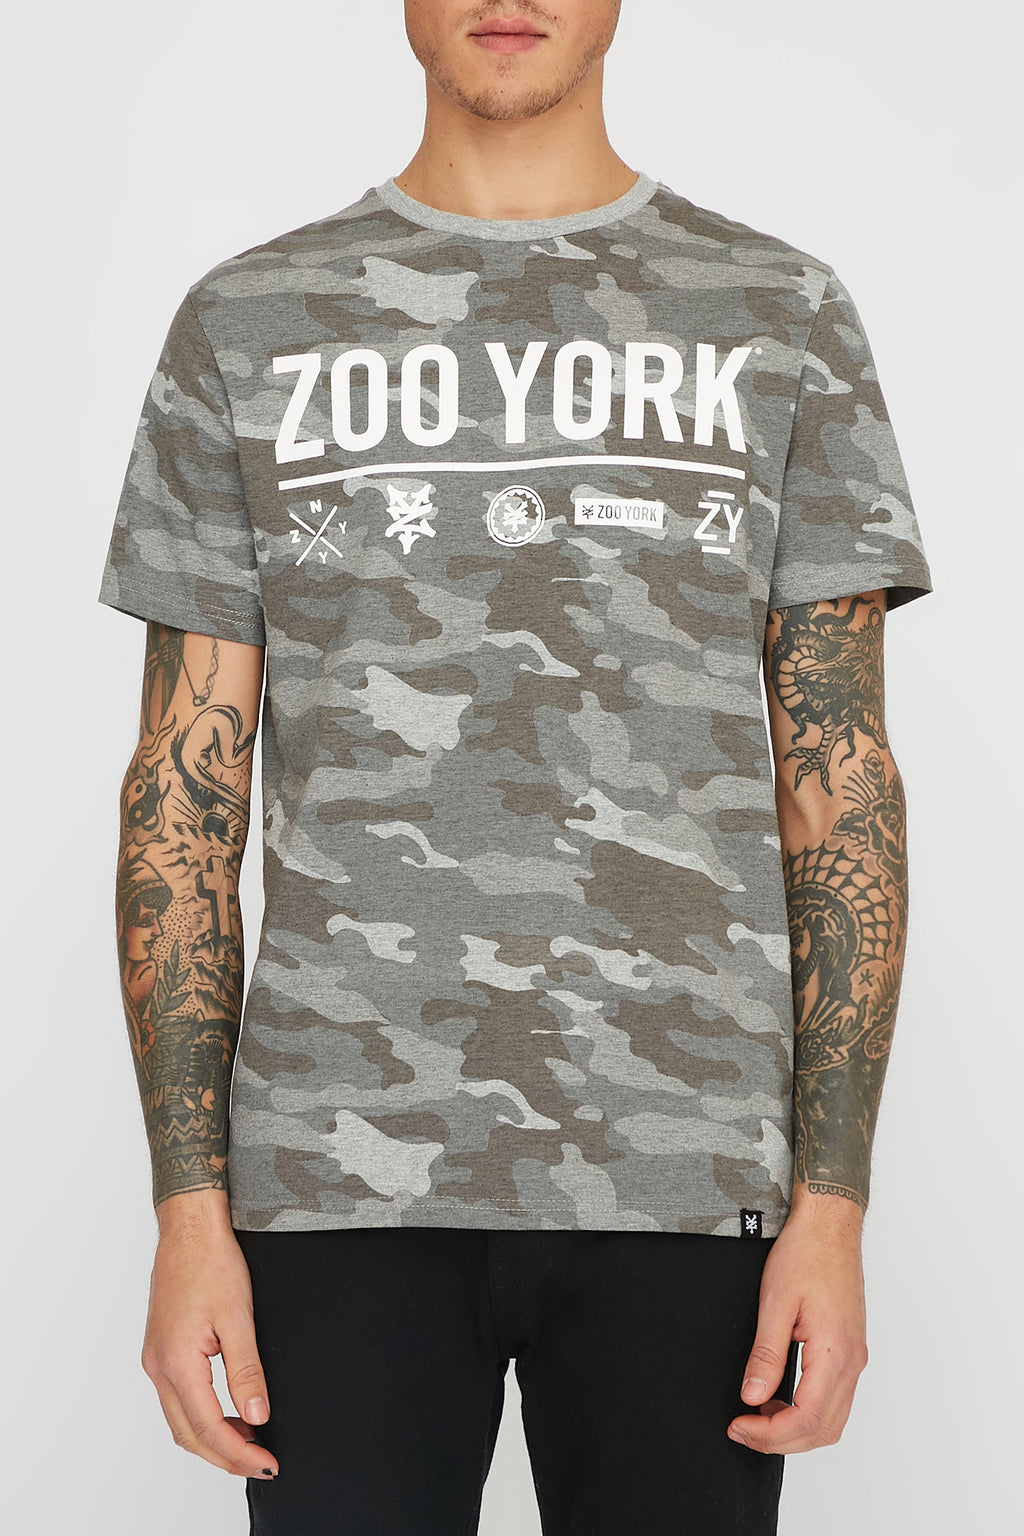 Zoo York Mens Camo T-Shirt